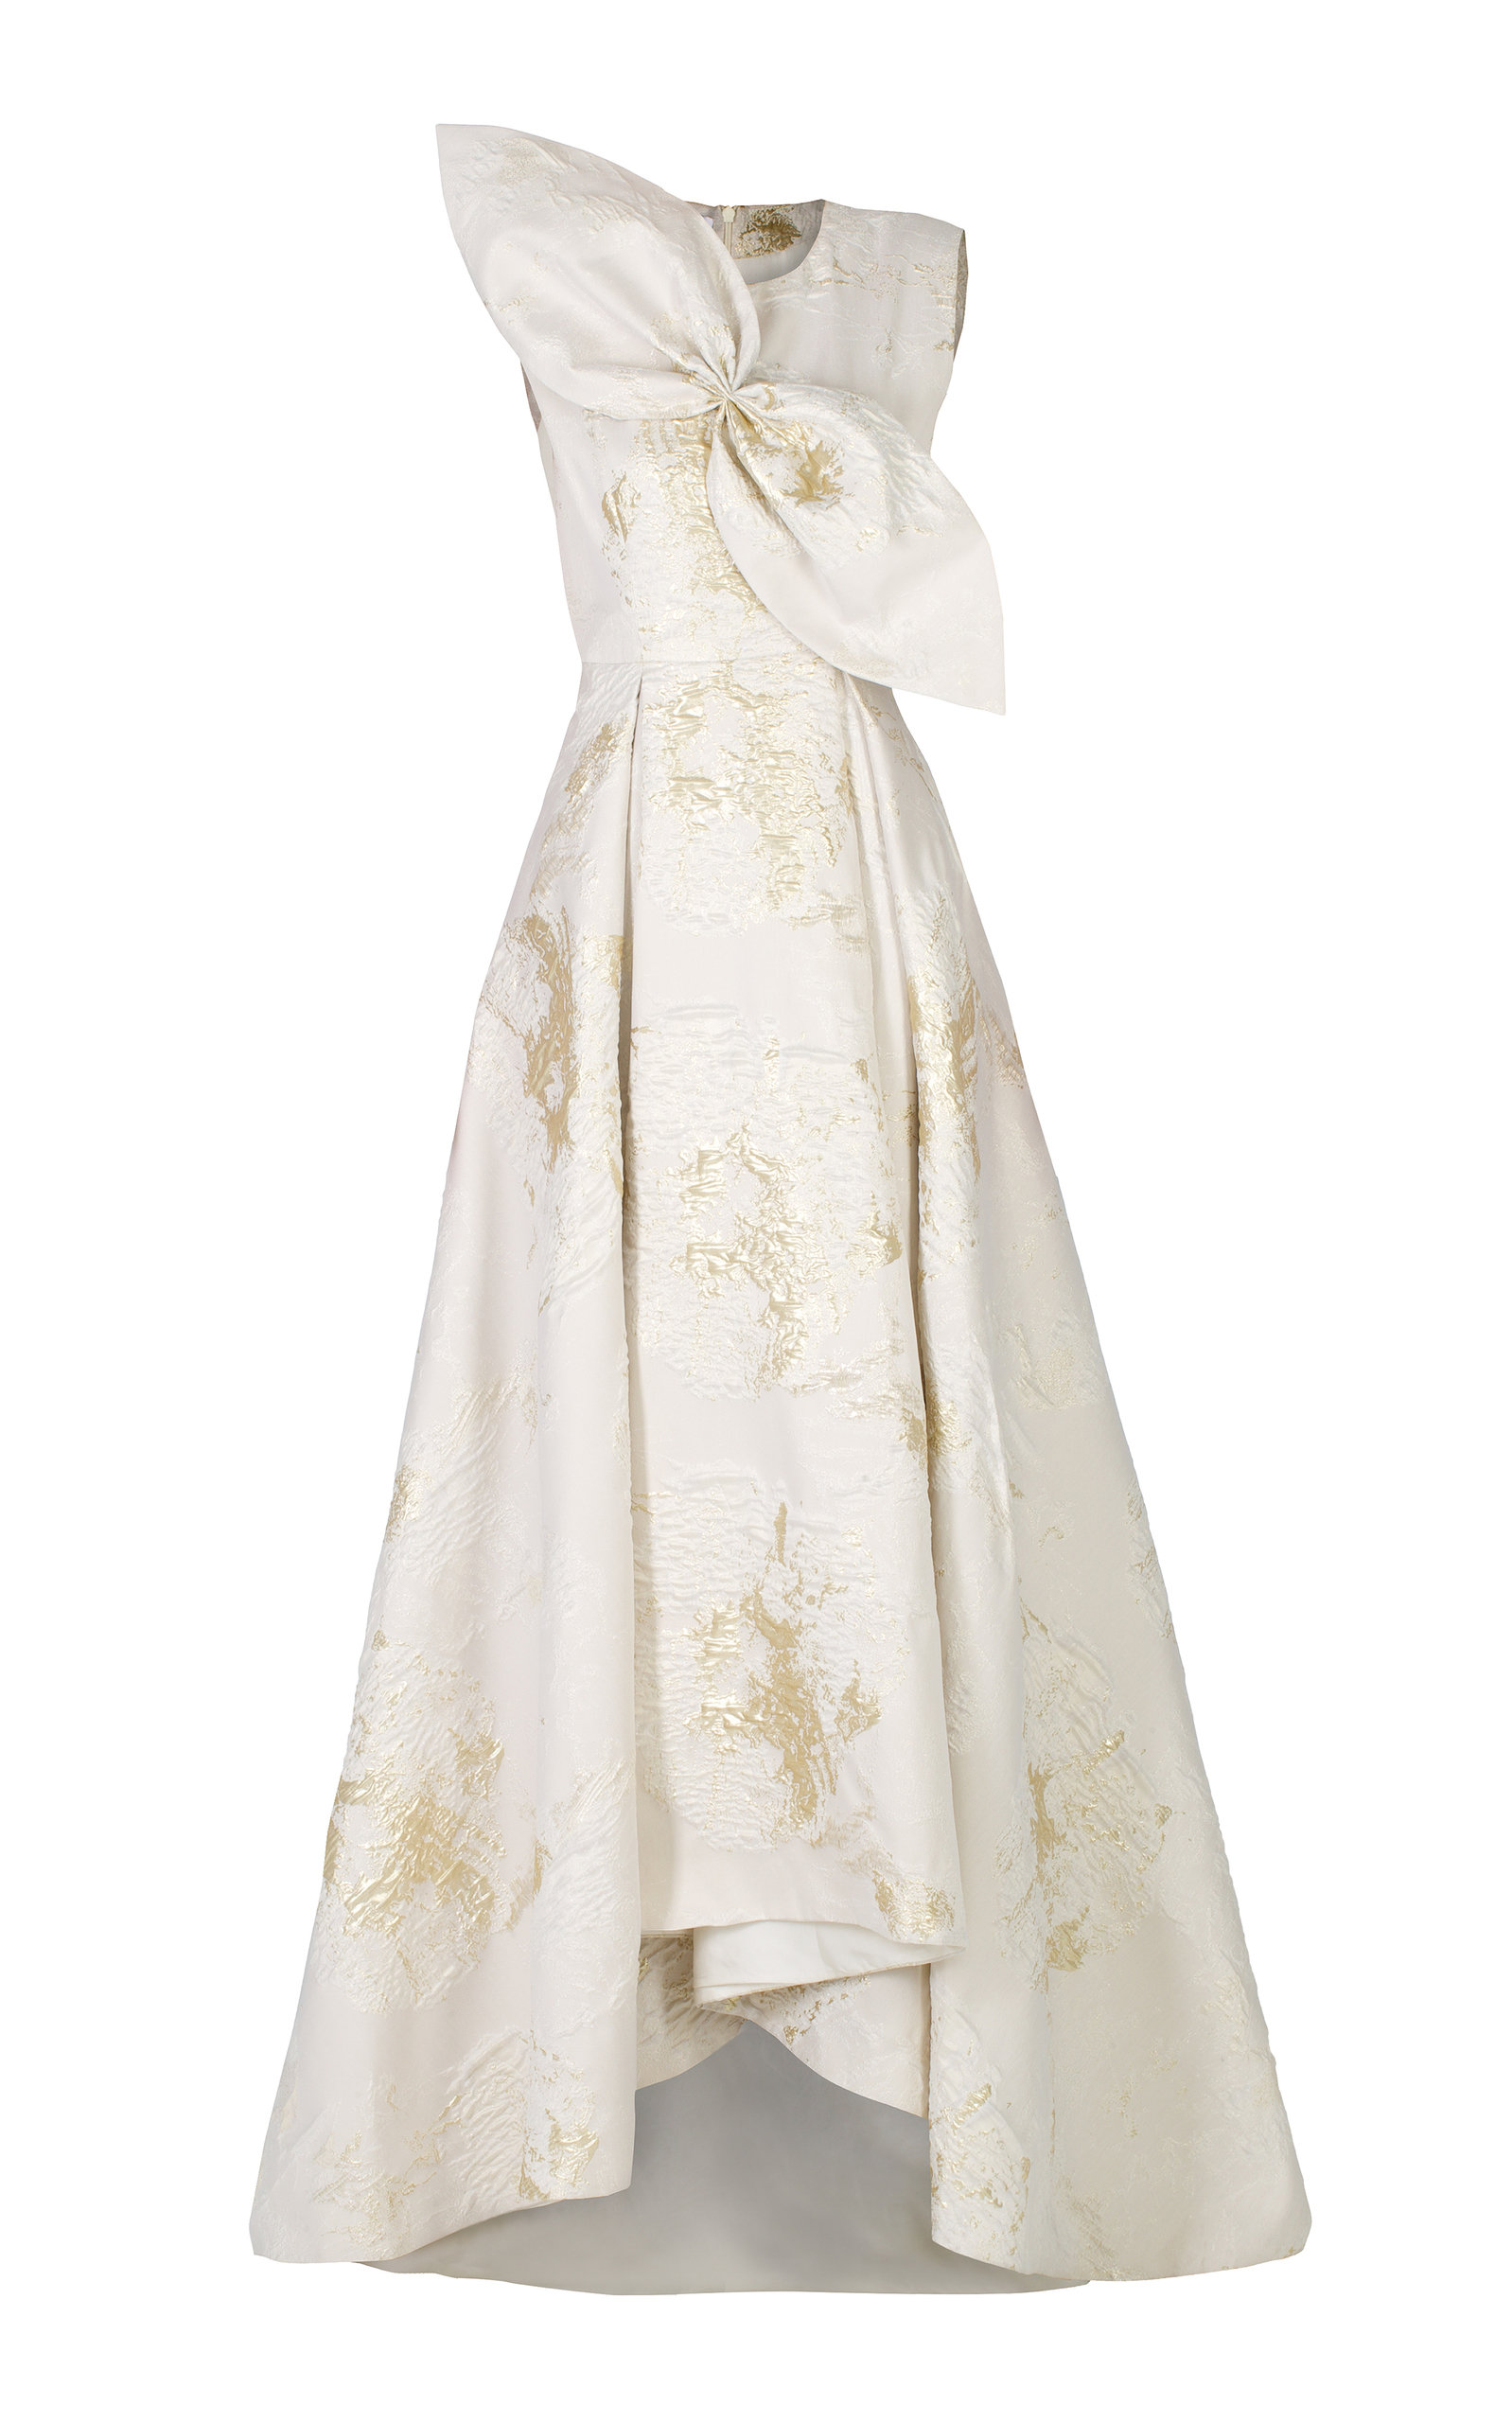 ANATOMI Brocade I Pleated Dress in Gold